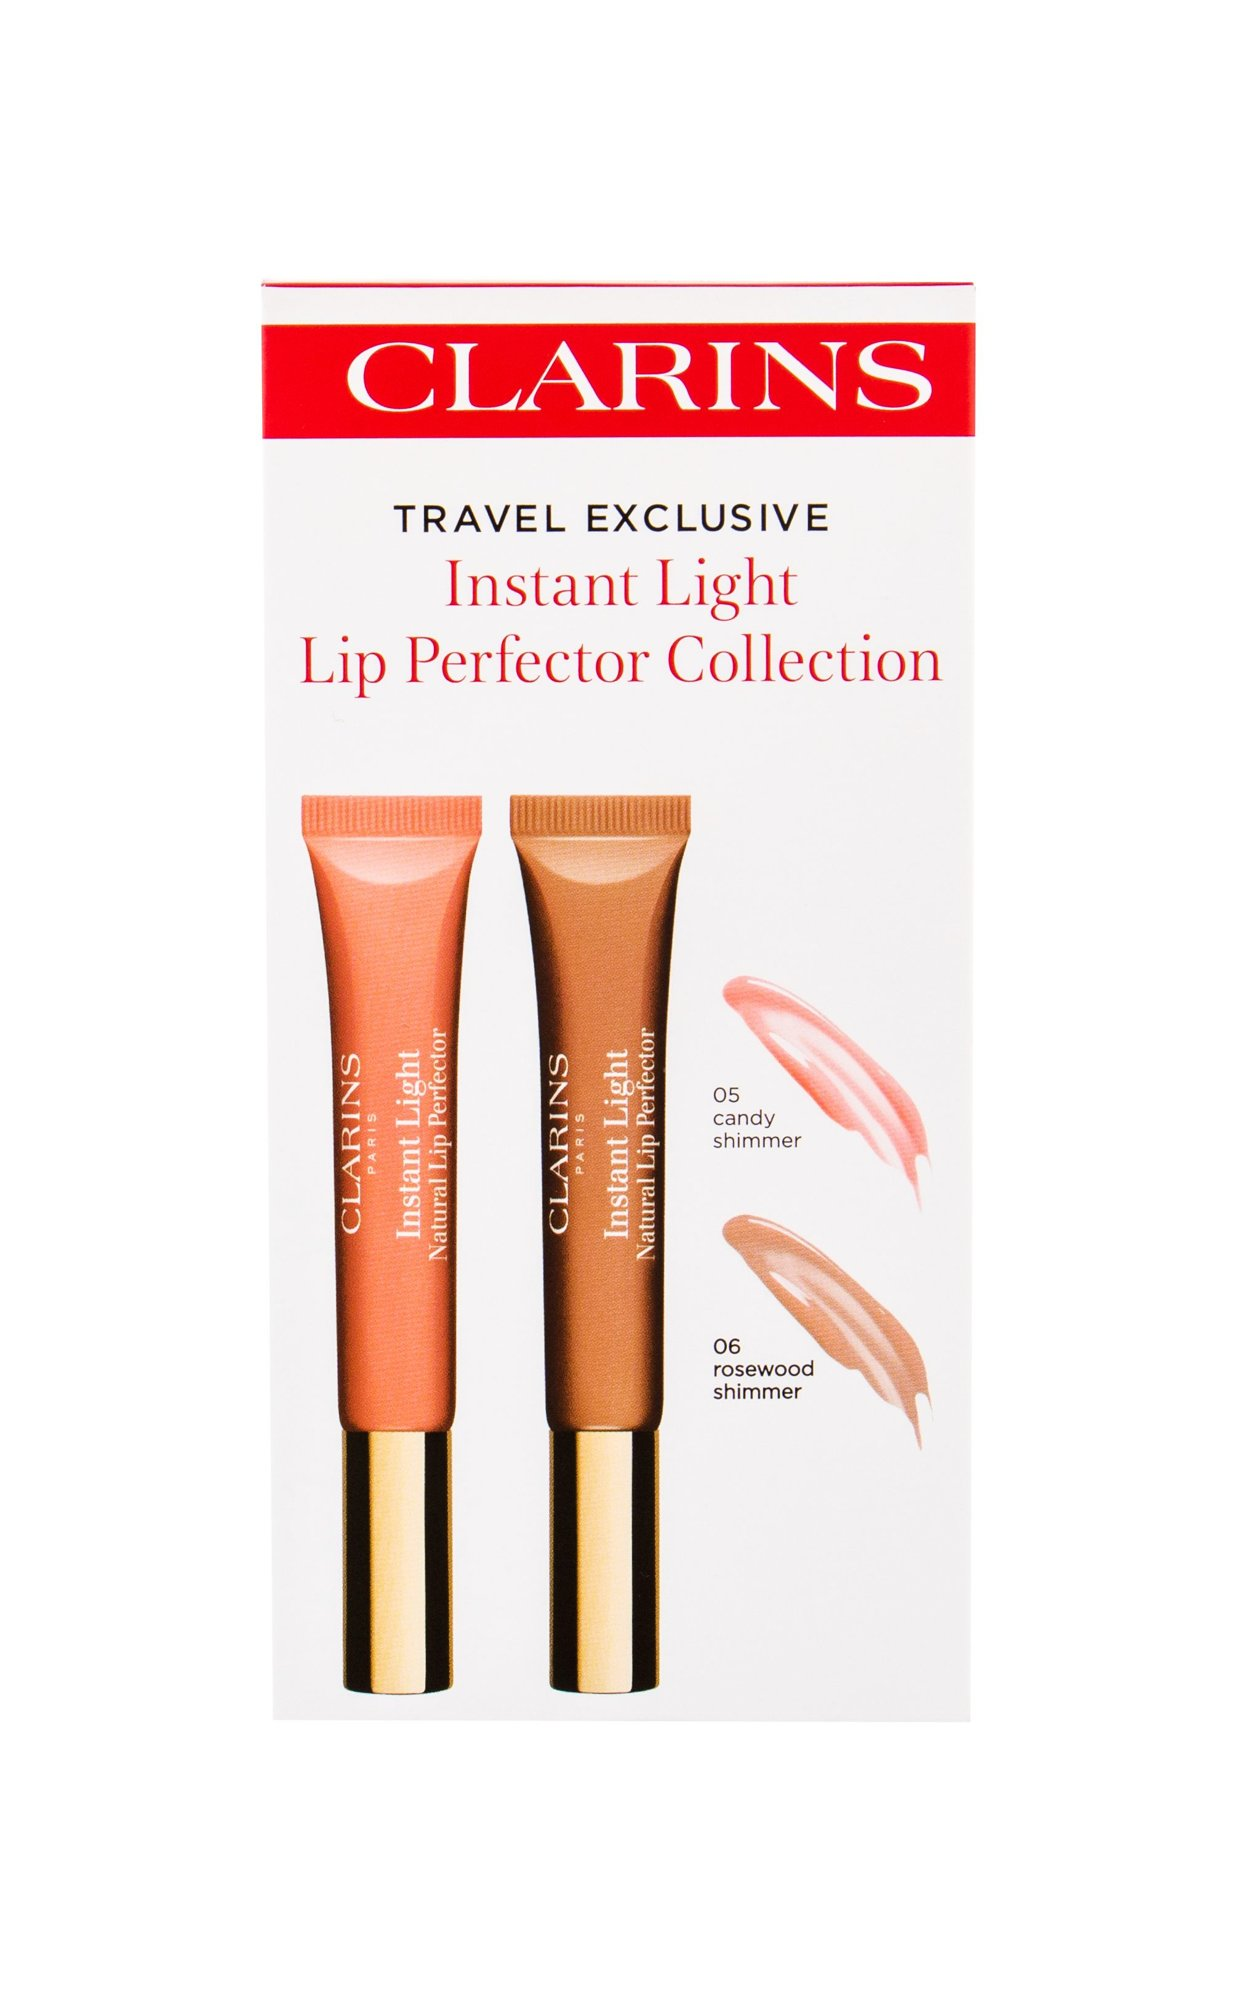 Clarins Instant Light Lip Gloss 12ml 05 Candy Shimmer